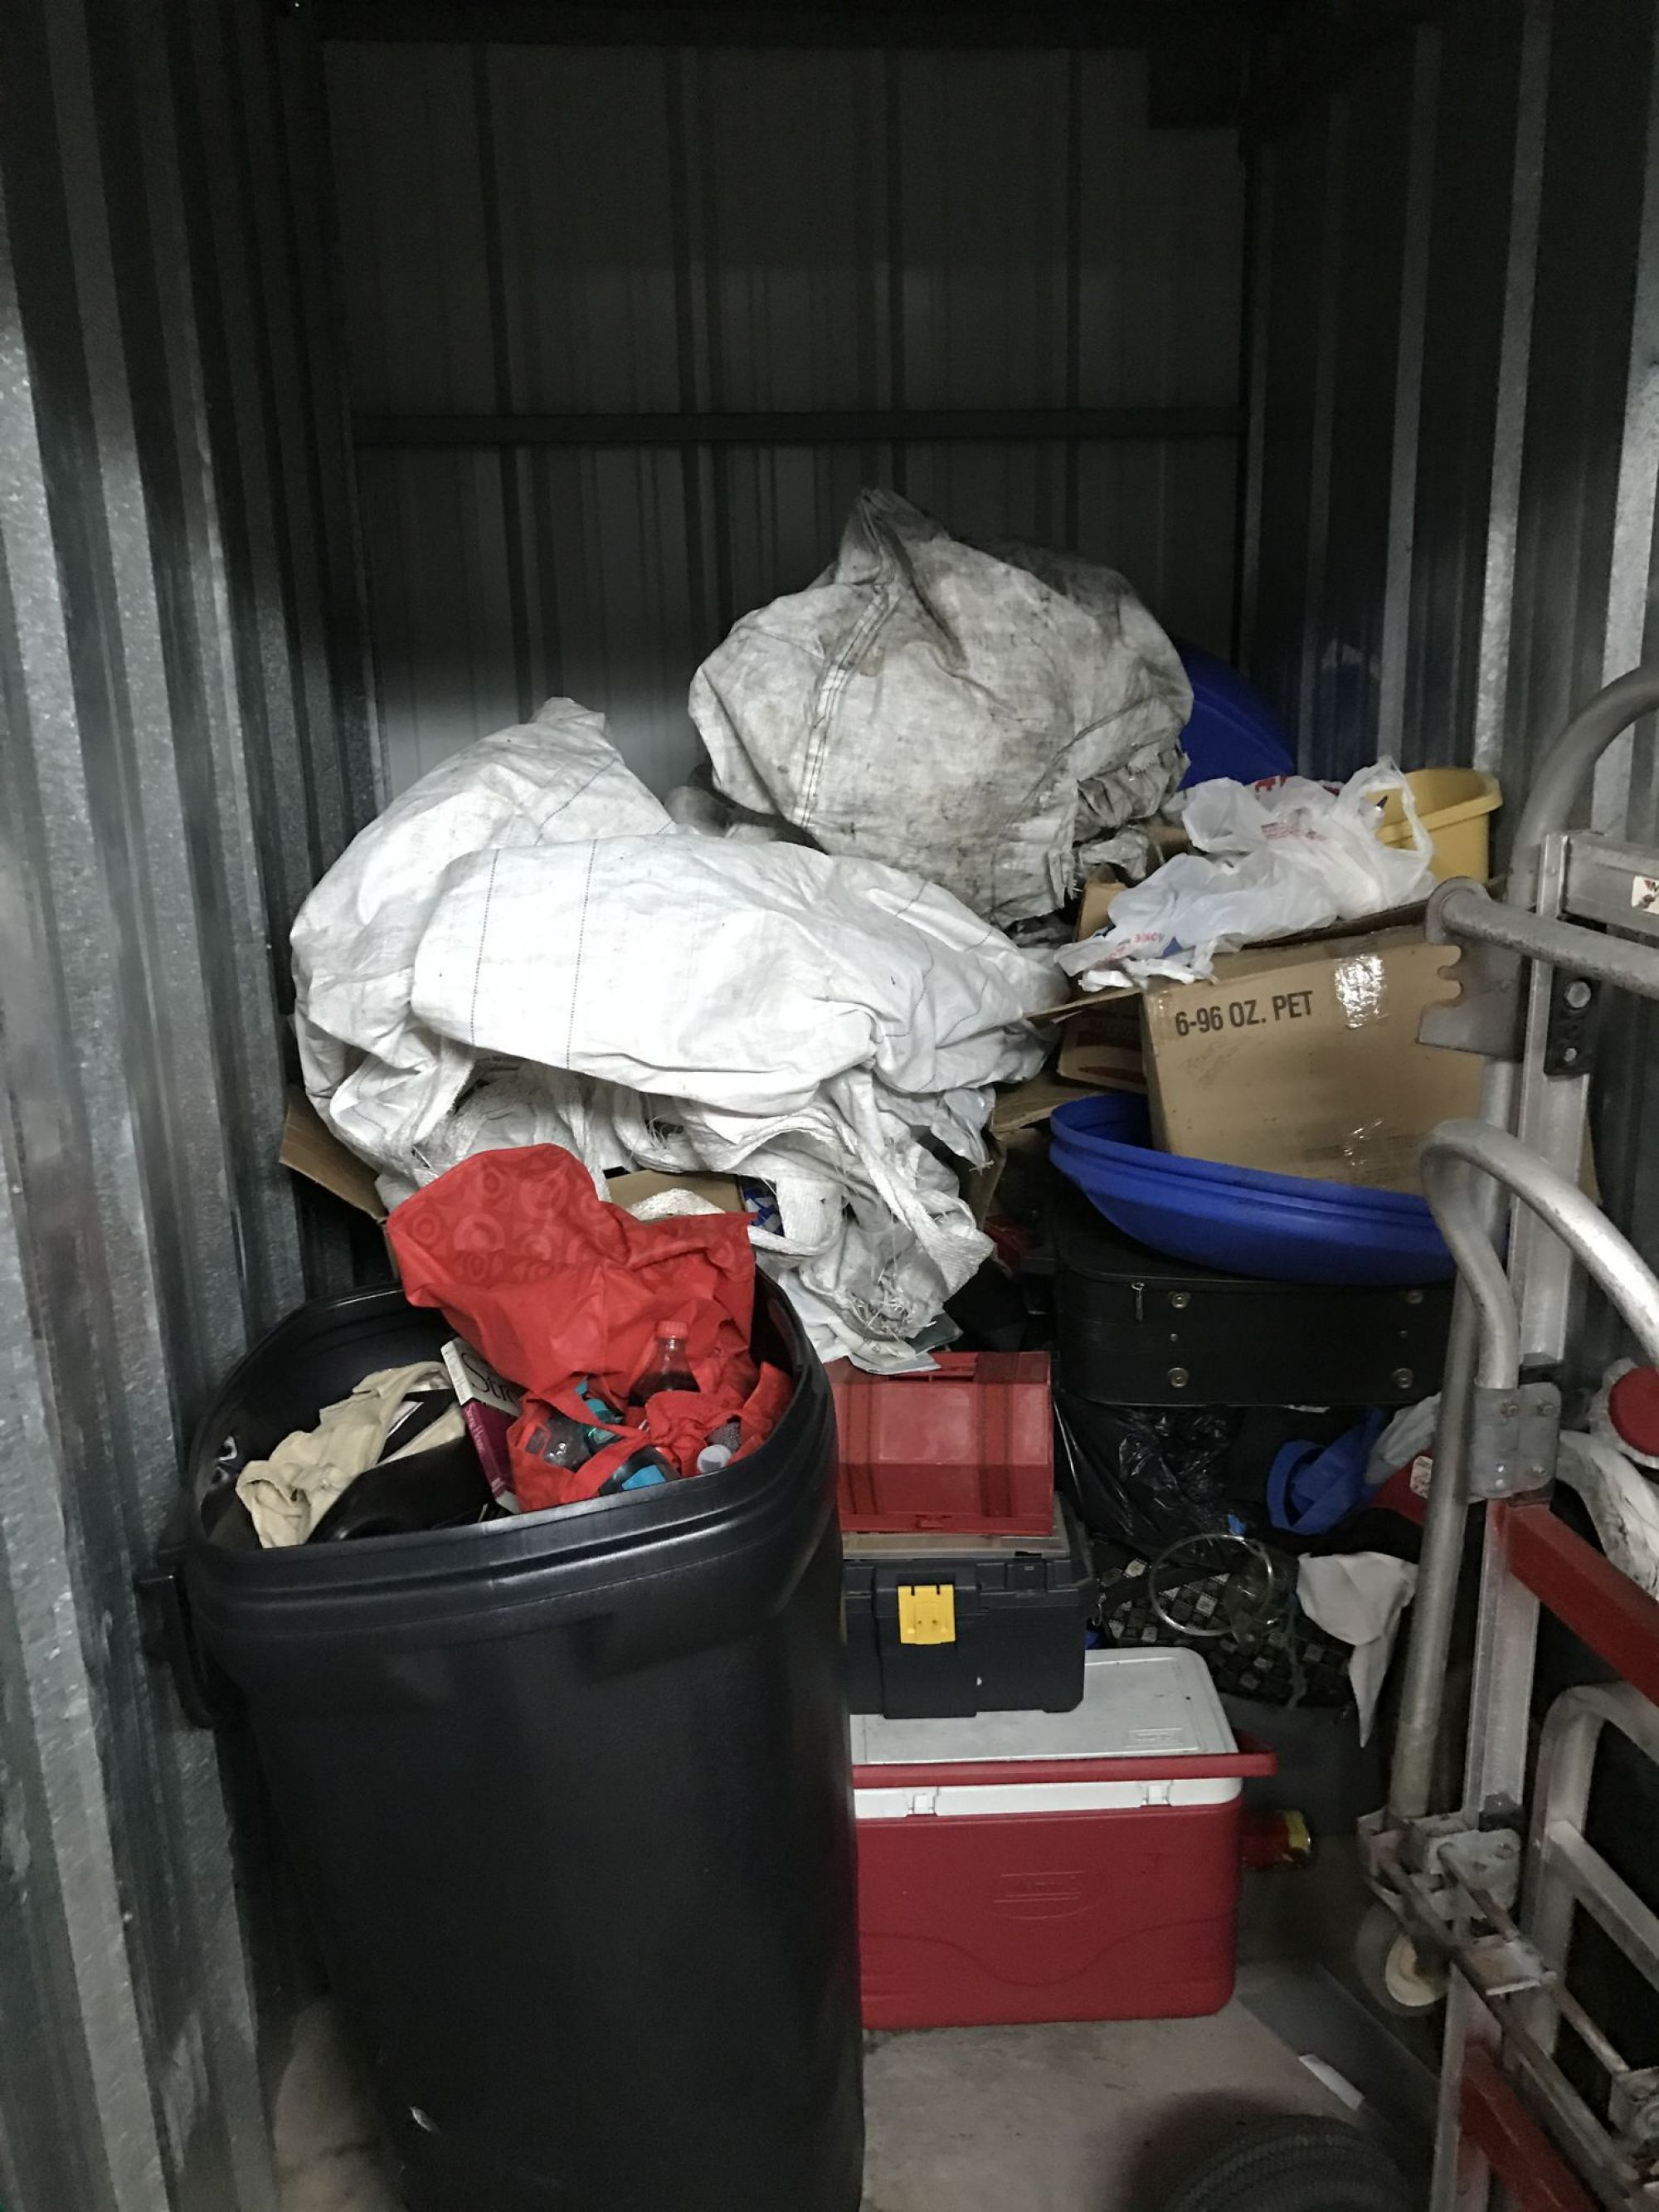 CLICK THUMBNAIL TO VIEW. Kailua Kona, HI. Extra Space Storage